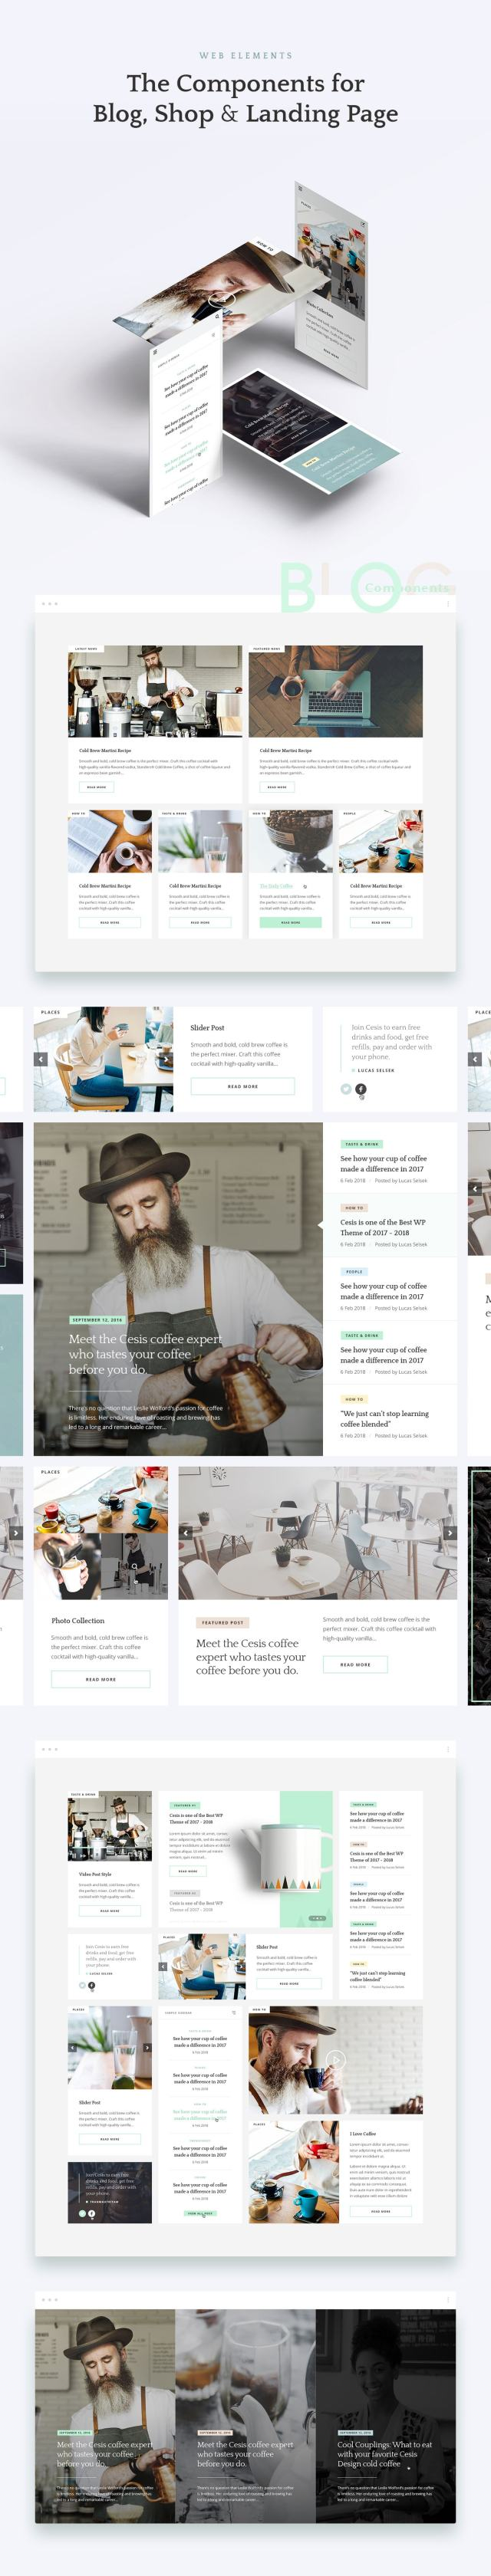 the best psd template - thefox psd - version 1.5